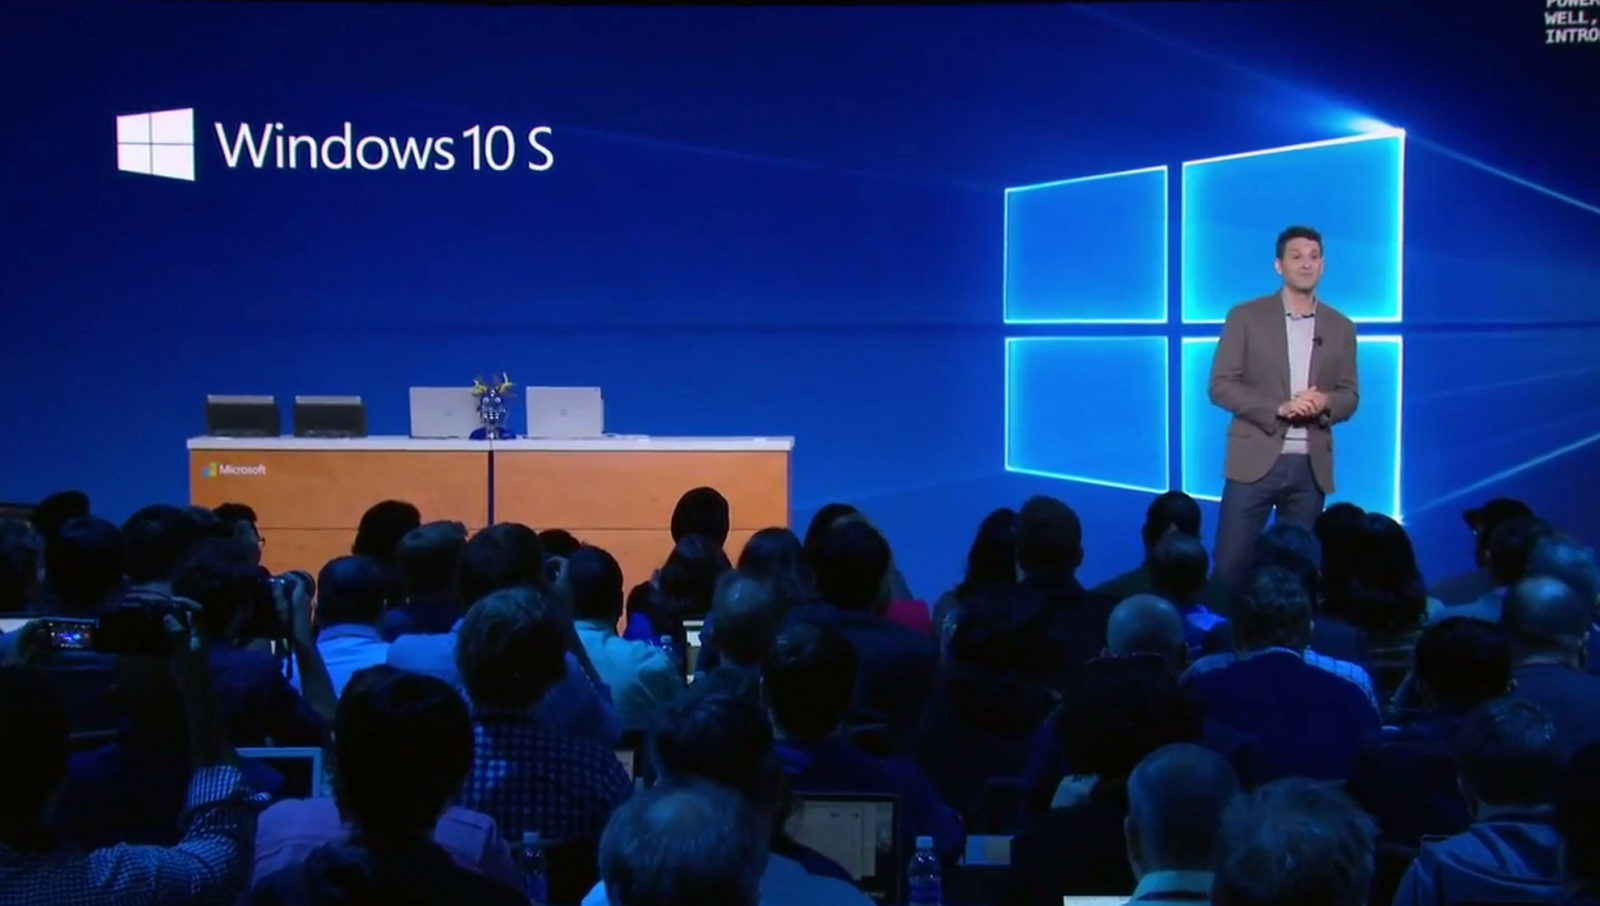 Windows 10 S logo on Microsoft presentation